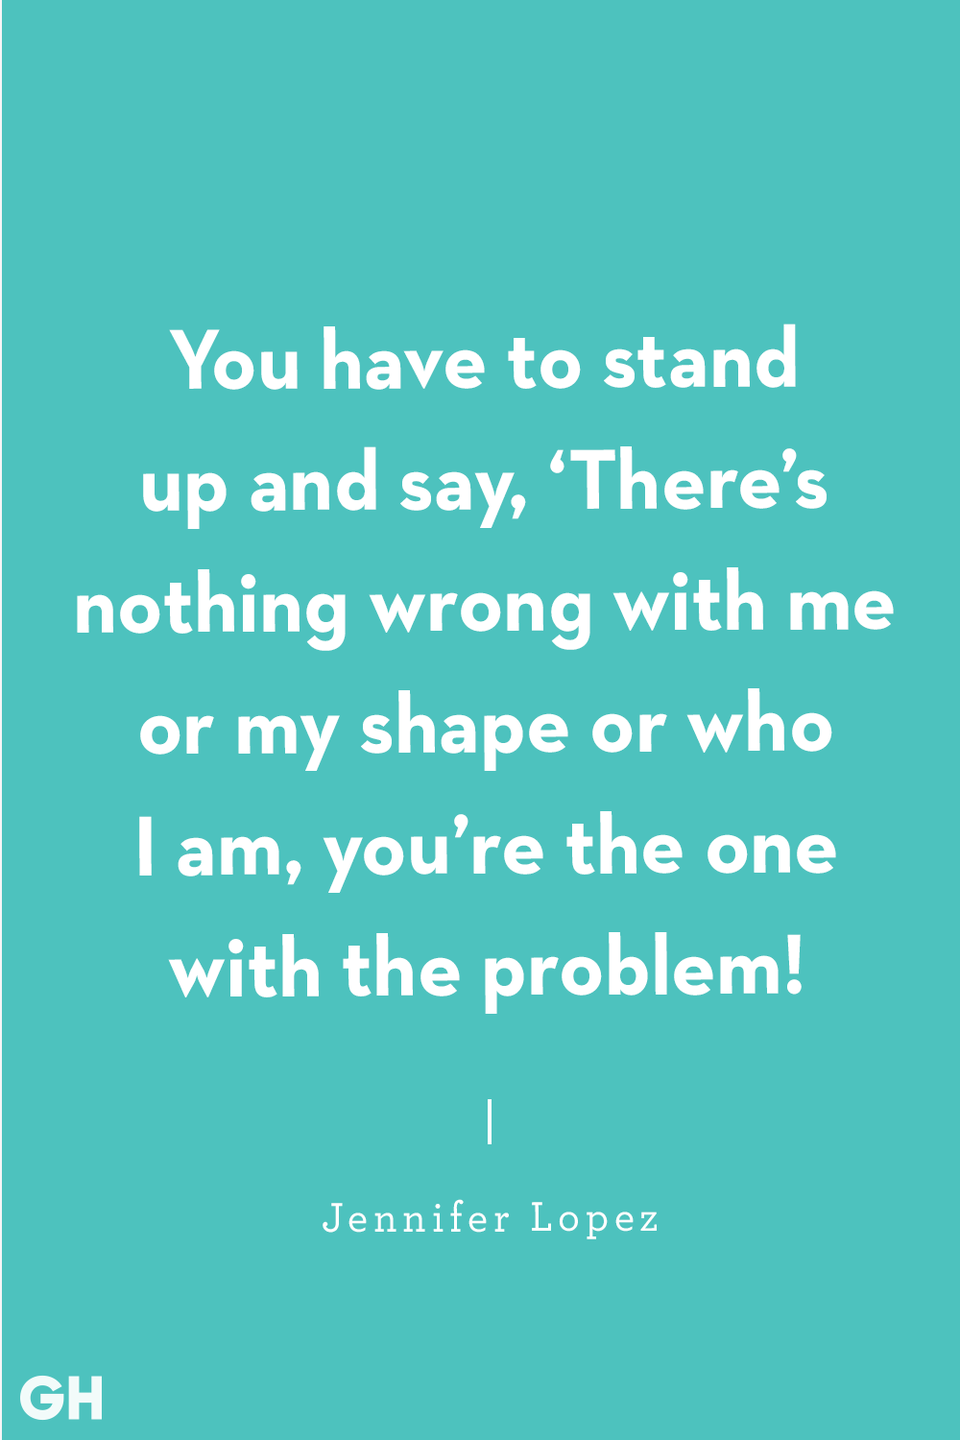 "<p>""You have to stand up and say, 'There's nothing wrong with me or my shape or who I am, you're the one with the problem!'""</p>"